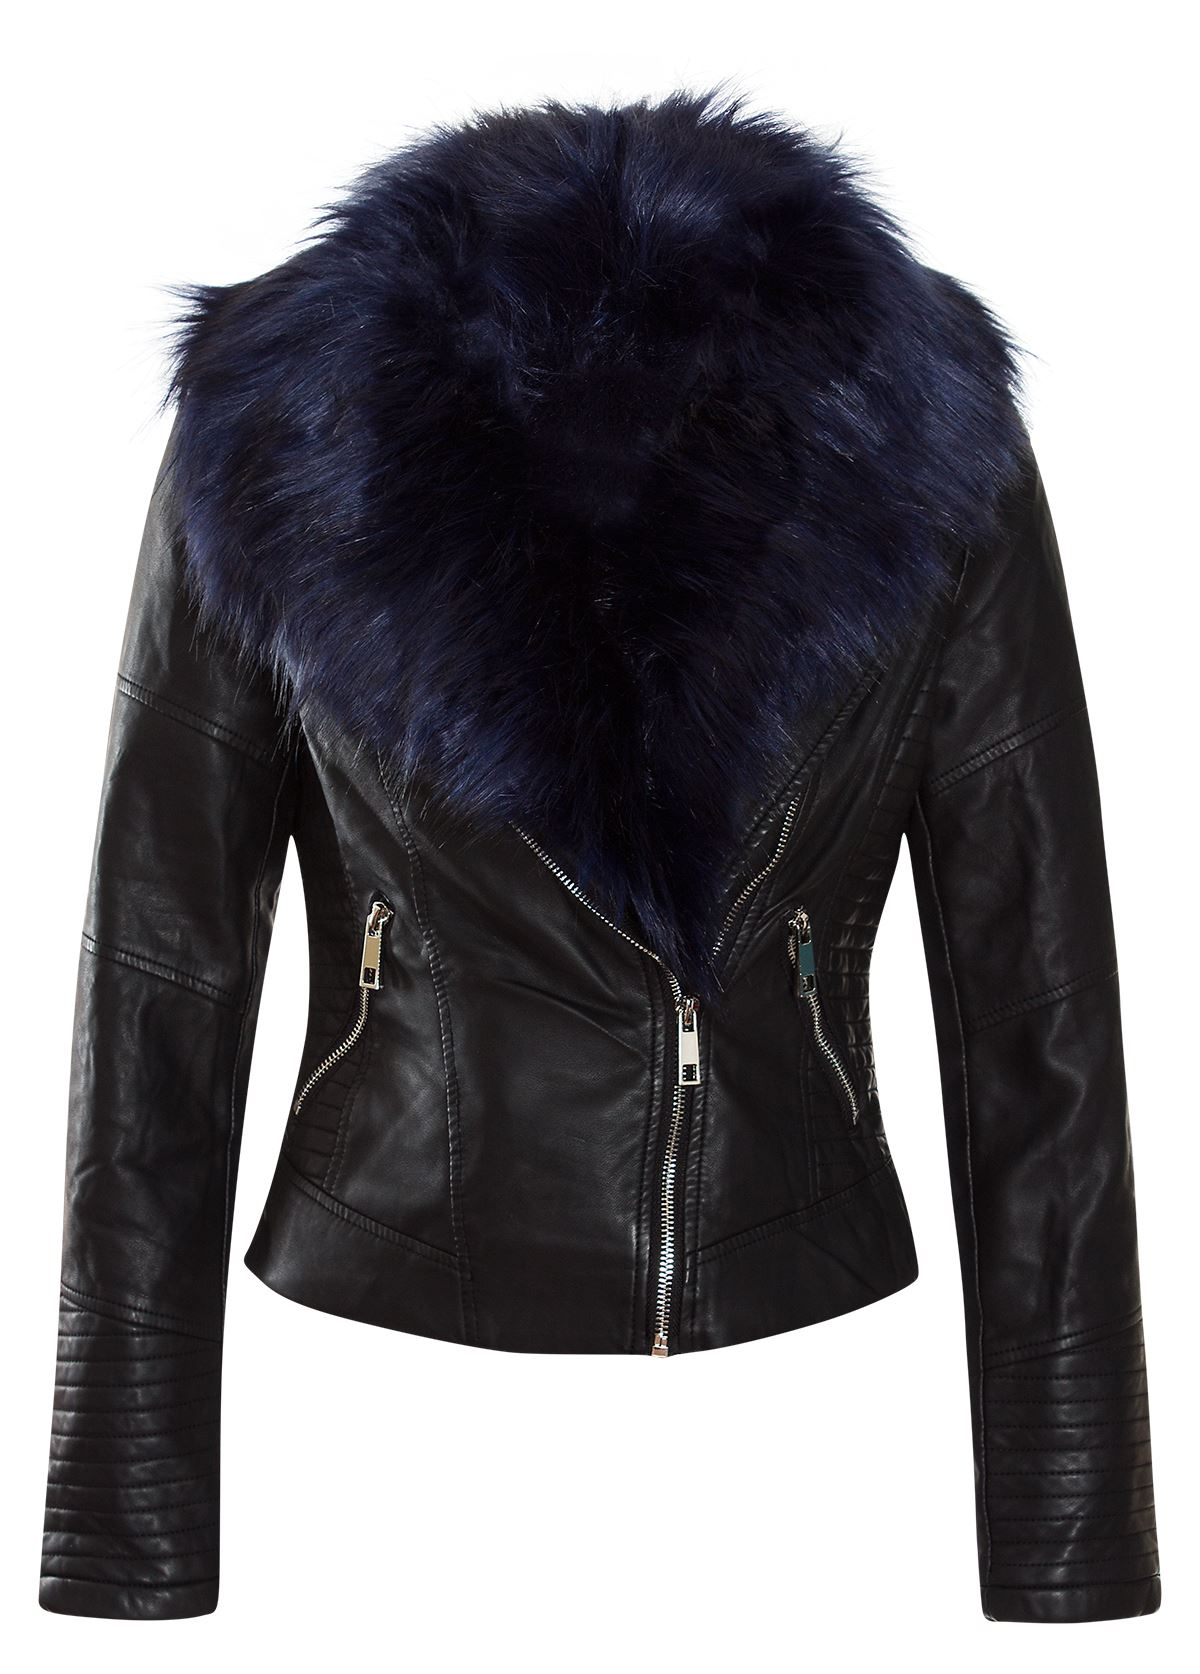 Leather jacket with faux fur